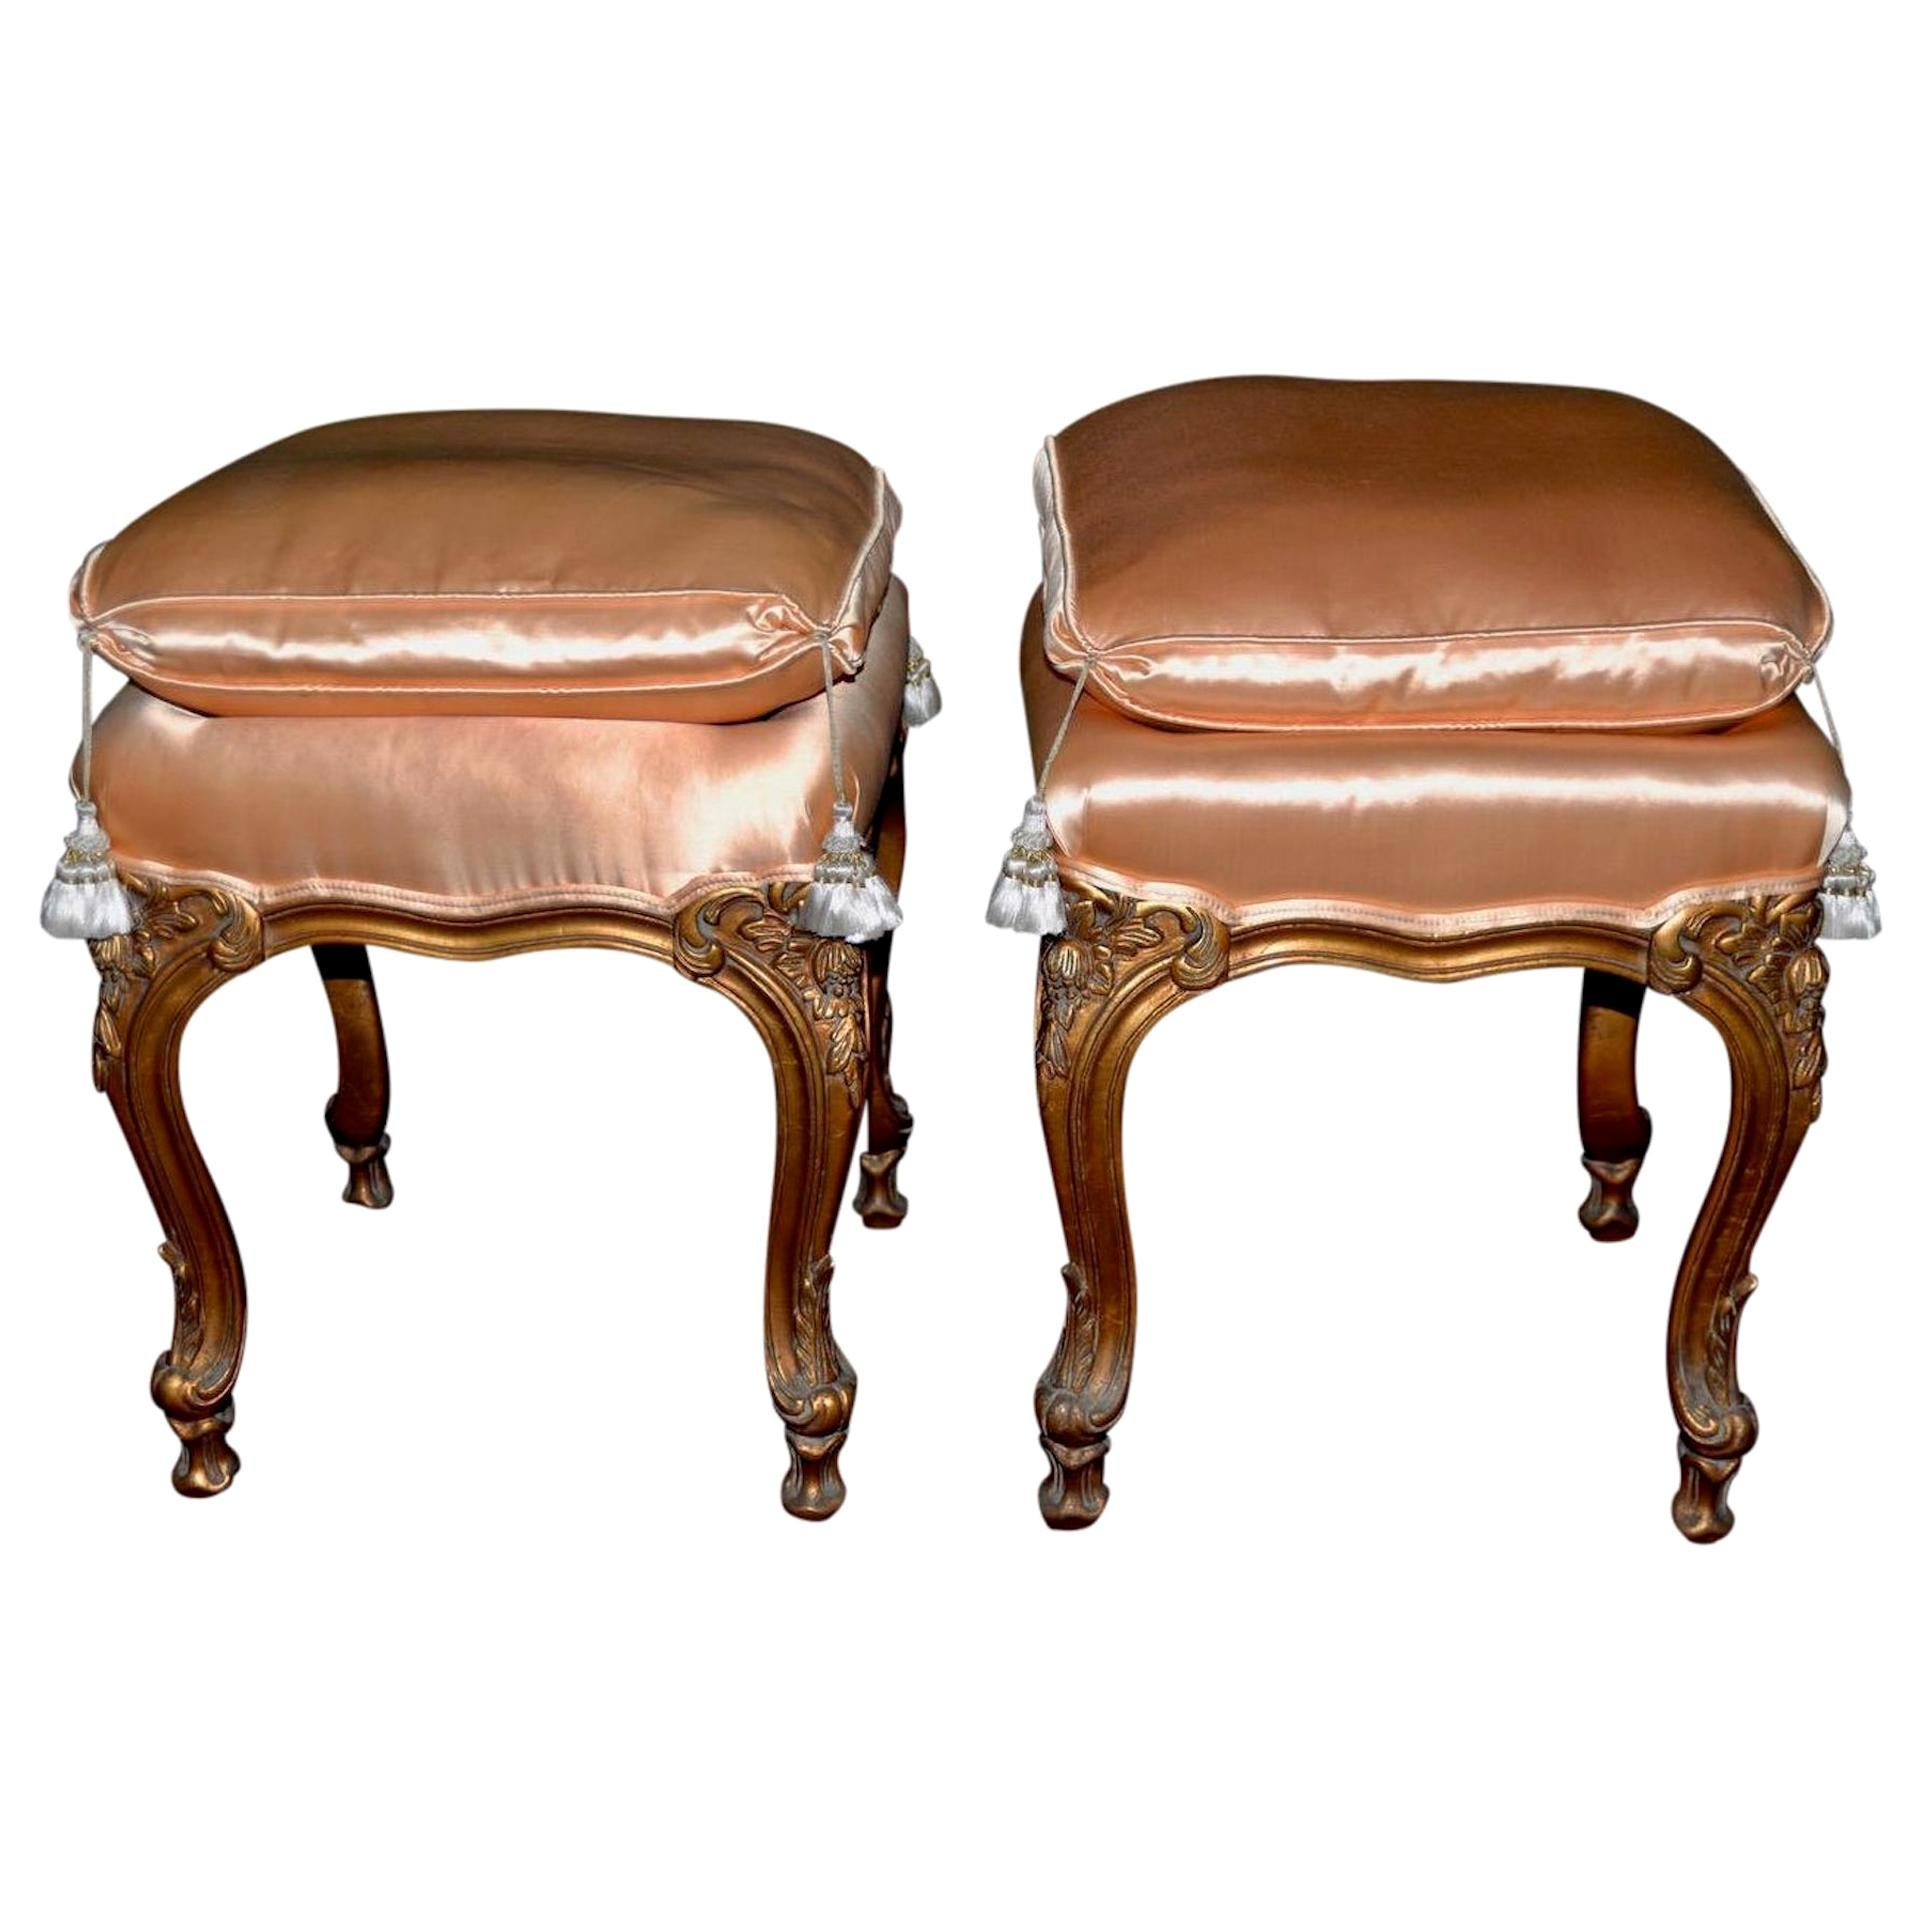 Pair of Italian Hand Carved and Silk Upholstered Ottomans, circa 1950s